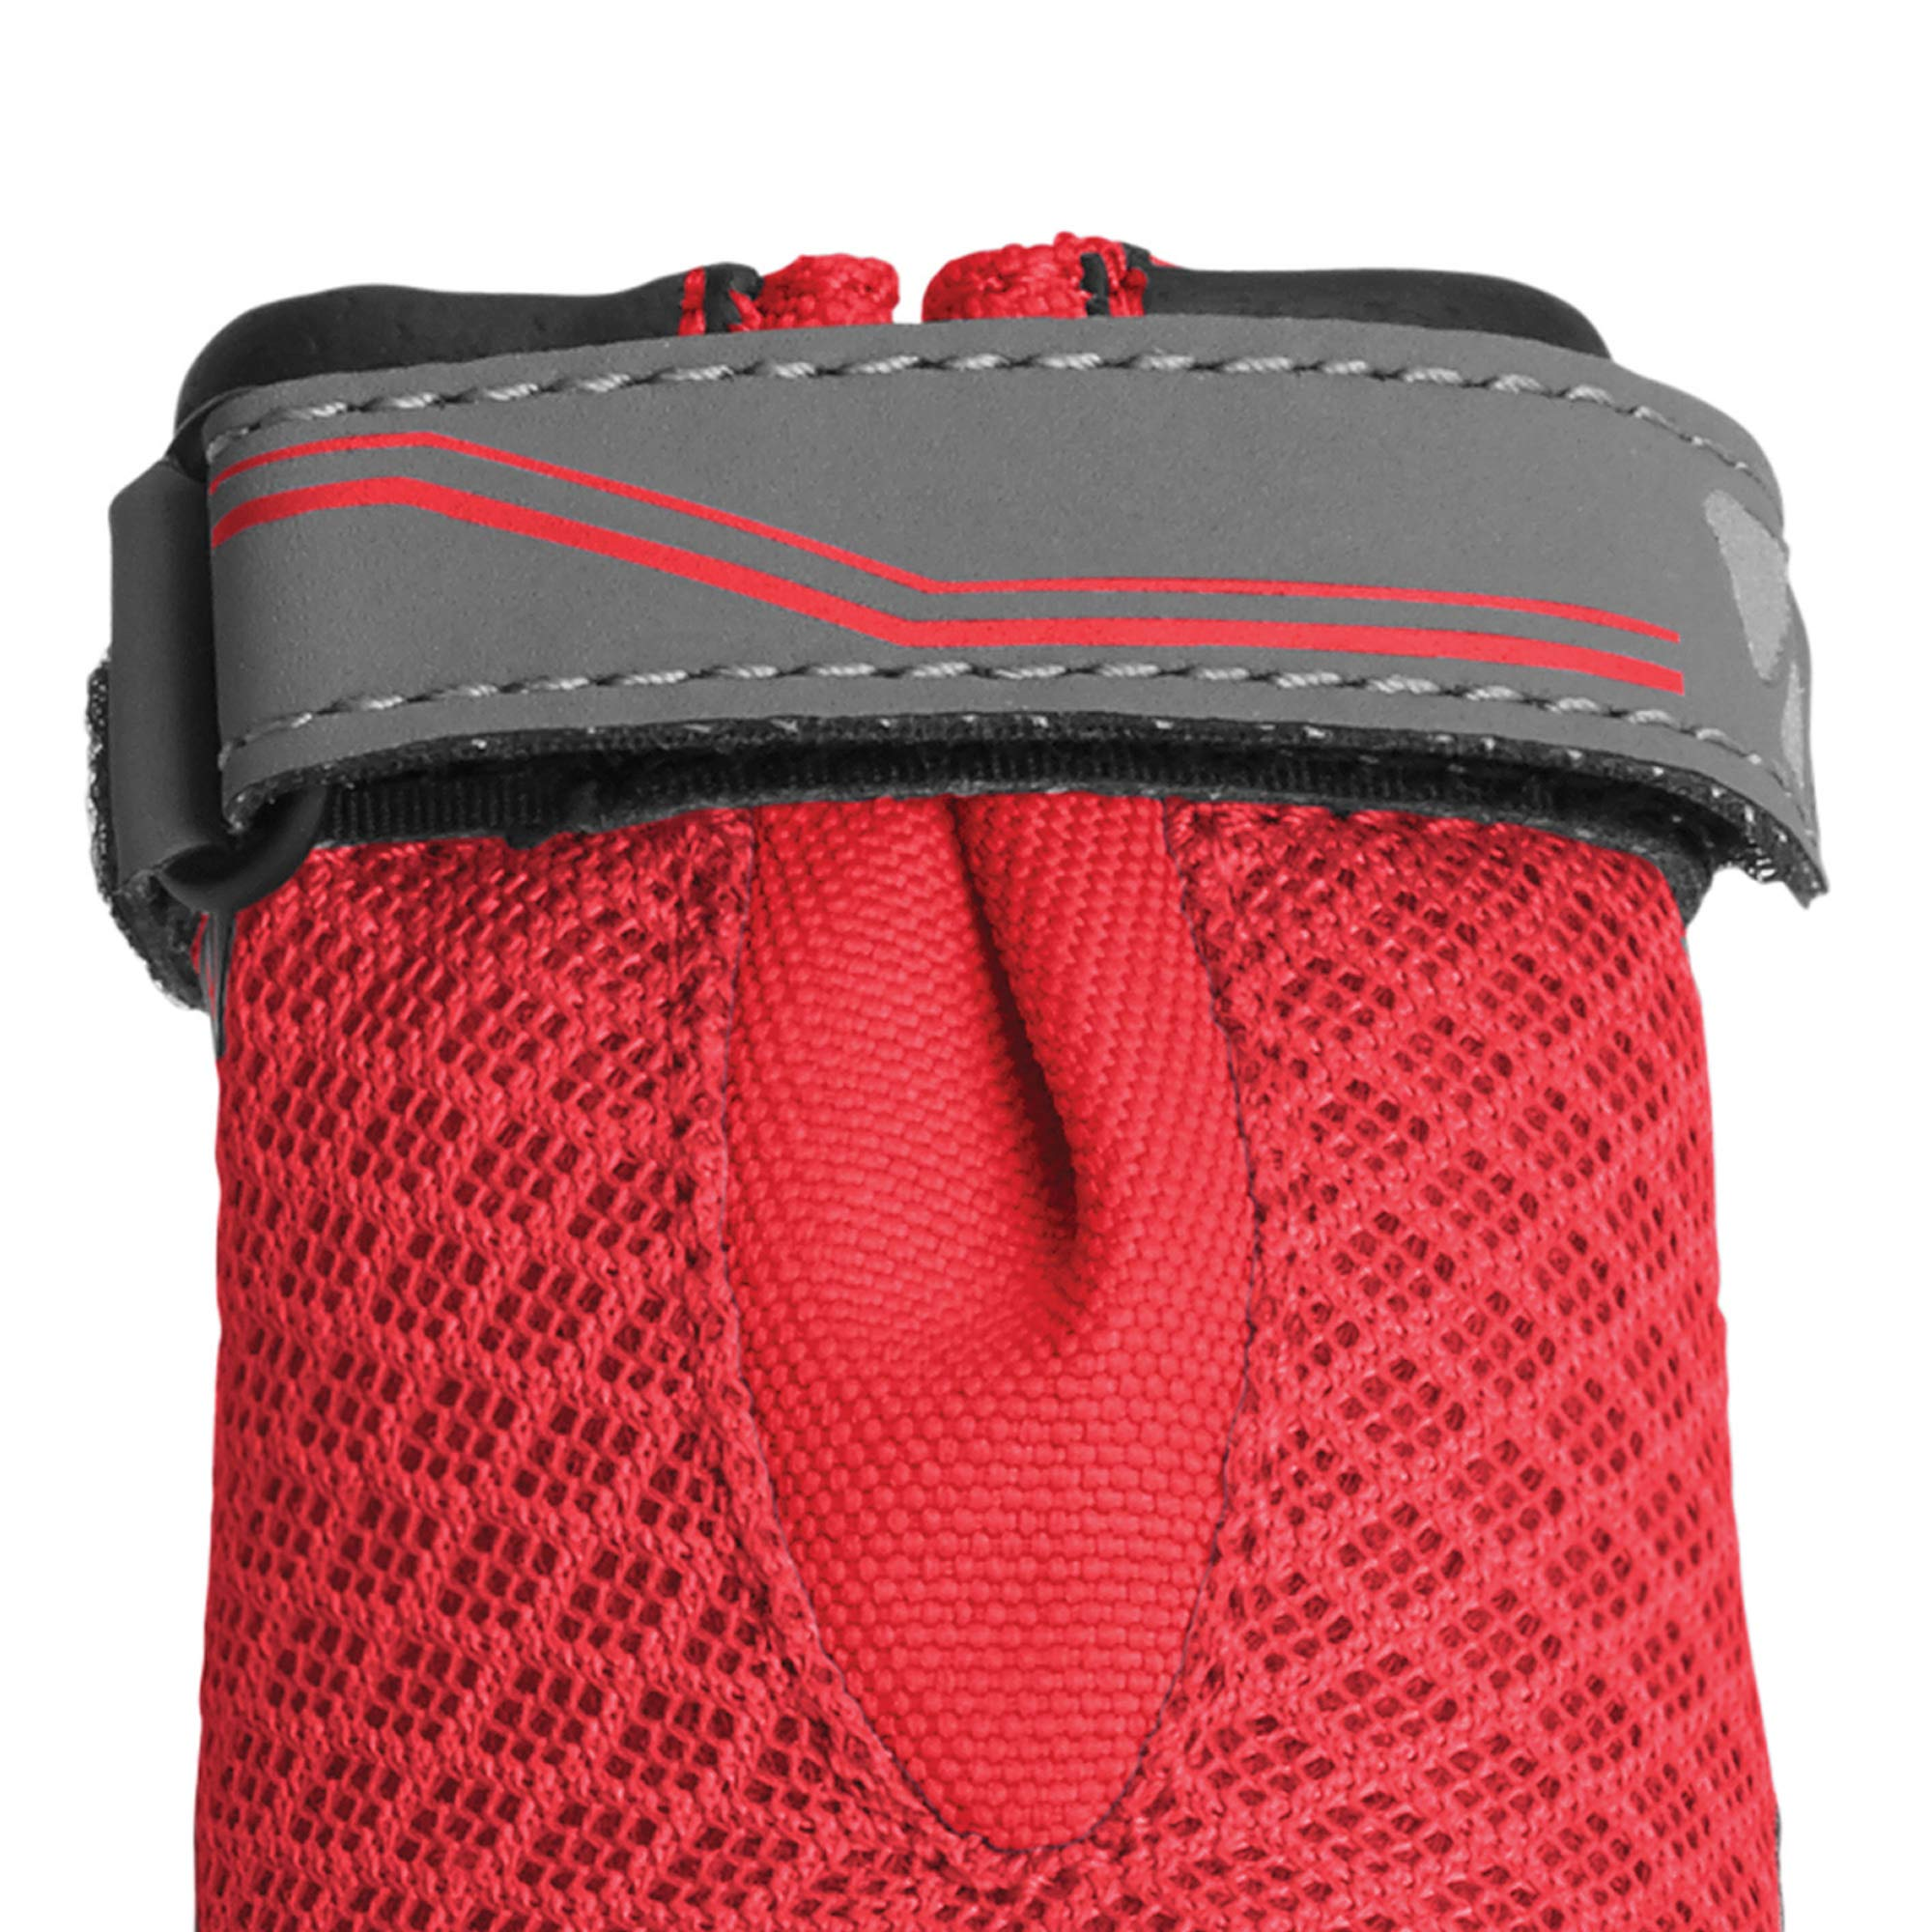 RUFFWEAR - Grip Trex, Red Currant, 2.25 in (4 Boots) by RUFFWEAR (Image #5)